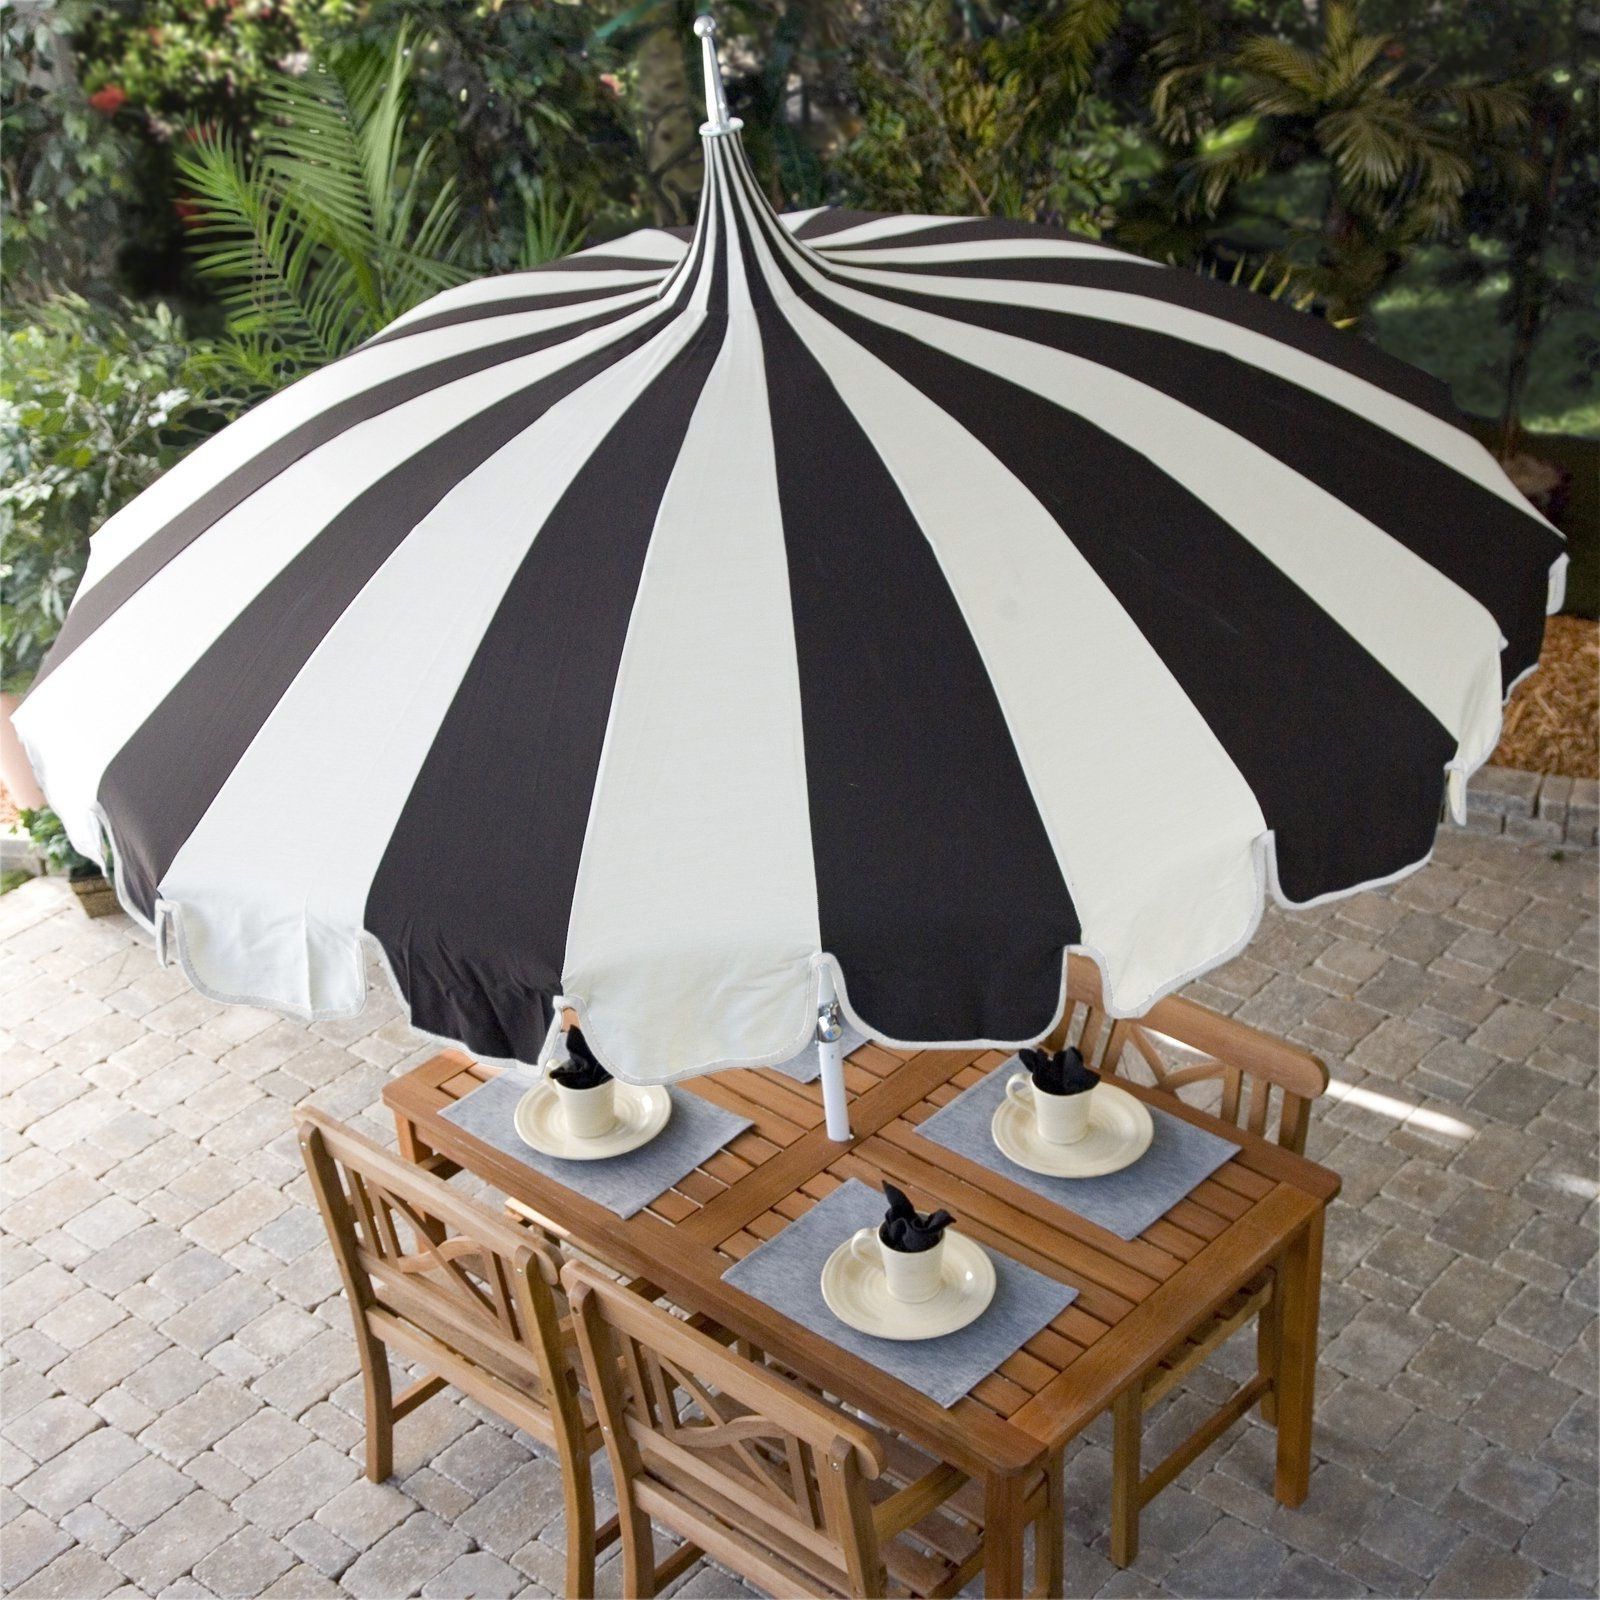 Patio Umbrellas At Lowes Inside Current Lowes Patio Umbrella Best Of Have To Have It Pagoda 8 5 Ft Patio (View 16 of 20)